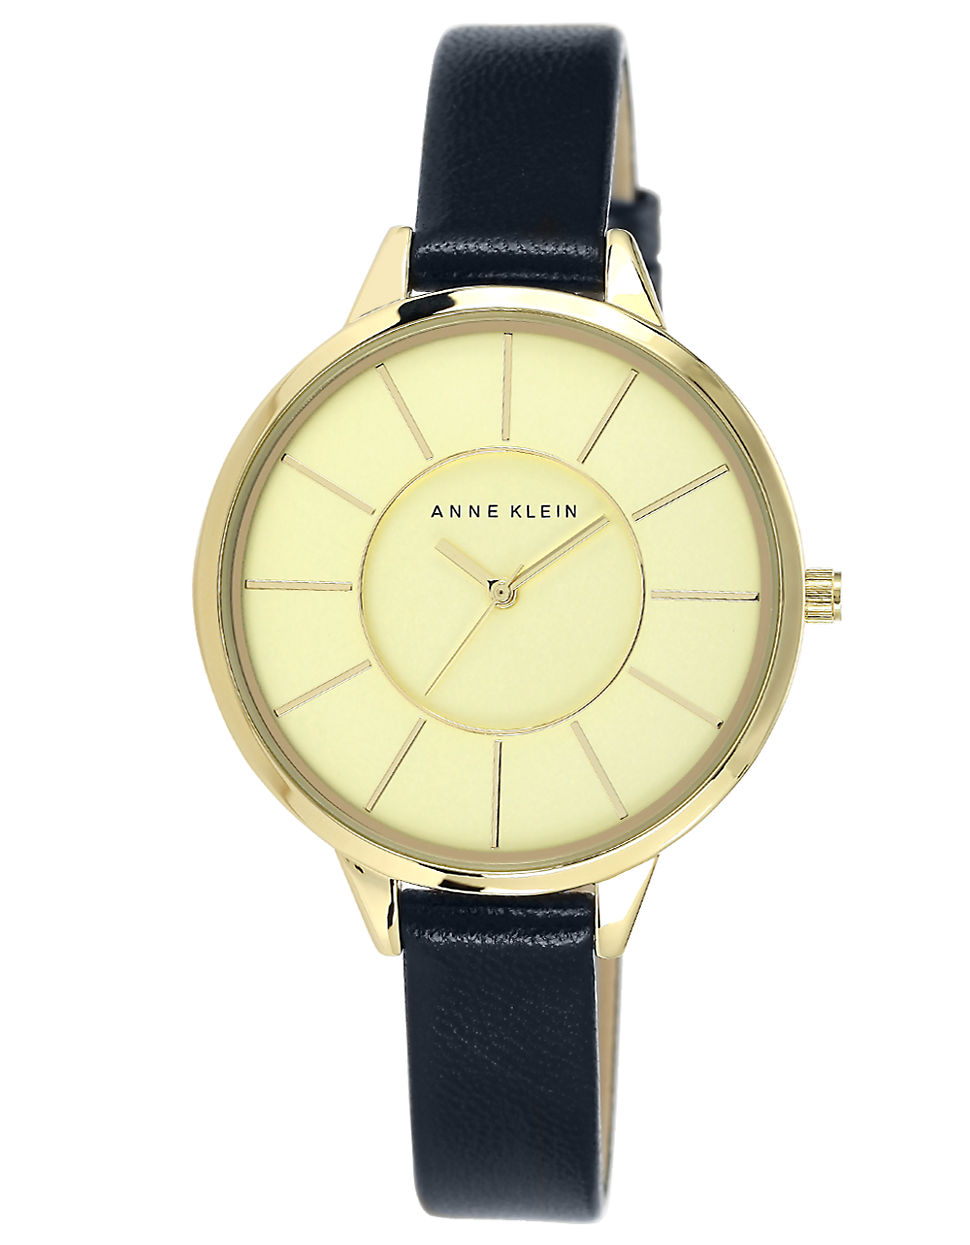 Anne klein ladies goldtone watch with leather strap in blue navy lyst for Anne klein leather strap